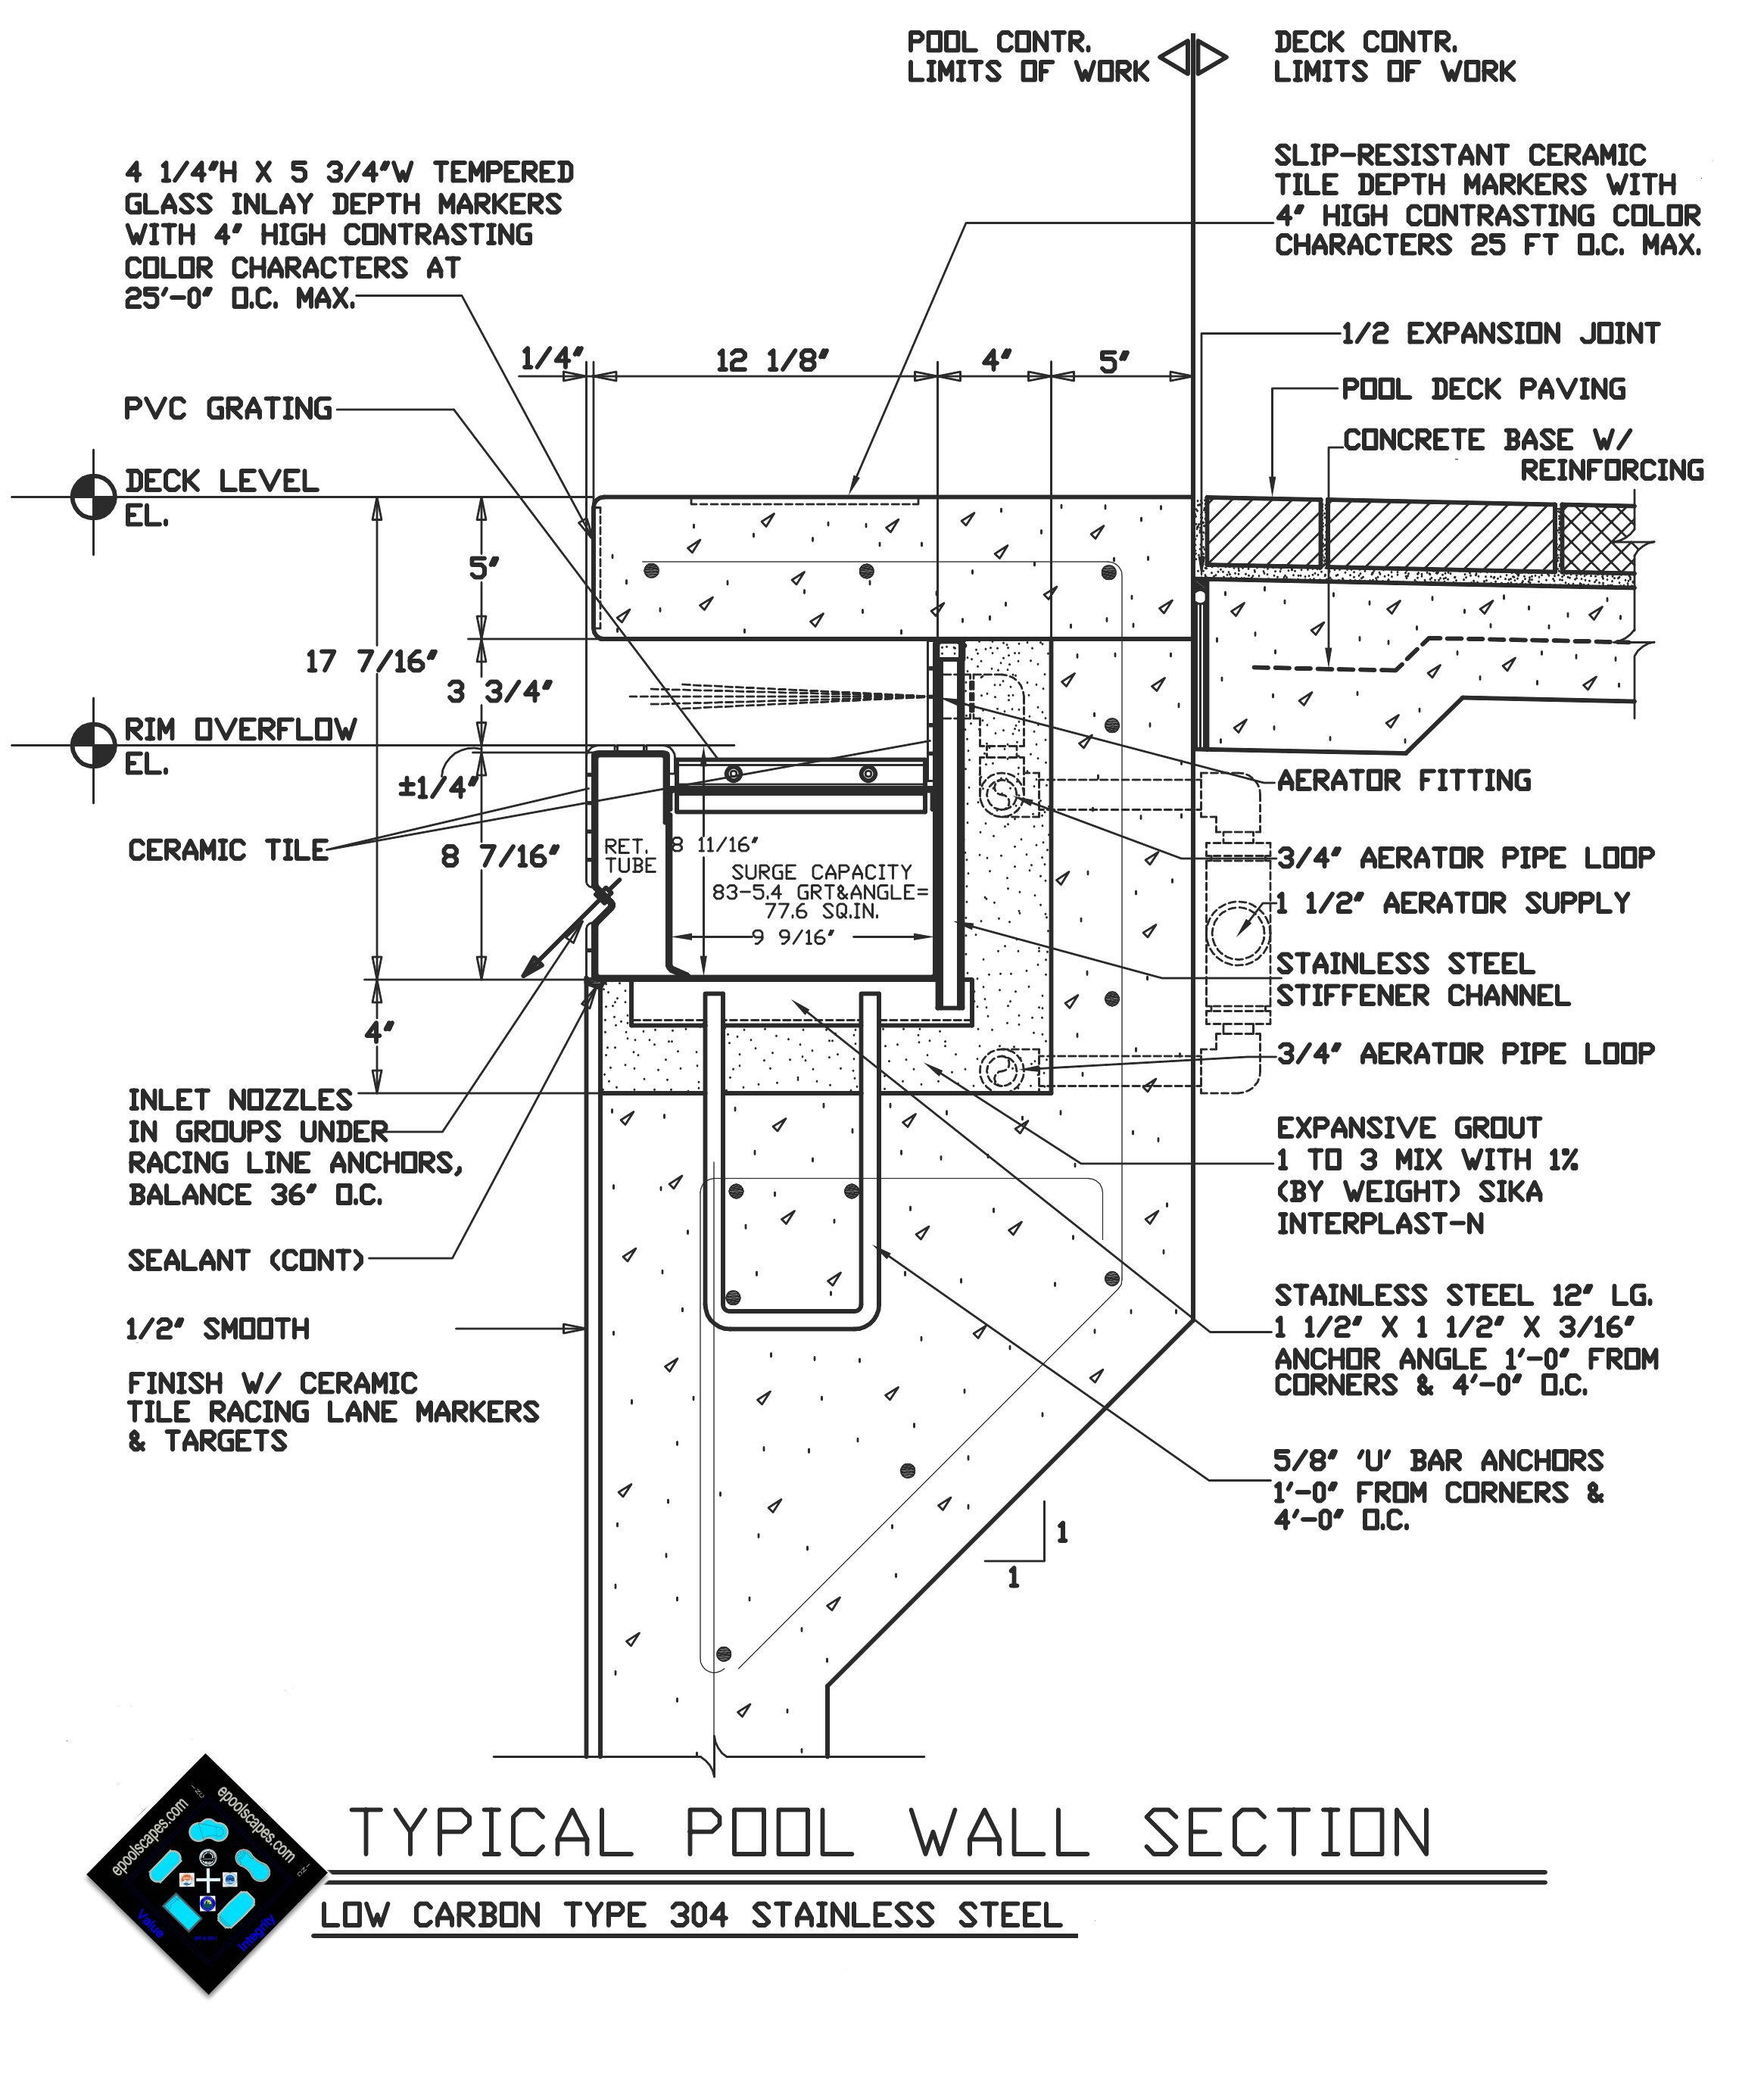 swimming pool autocad drawing details more - Swimming Pool Structural Design